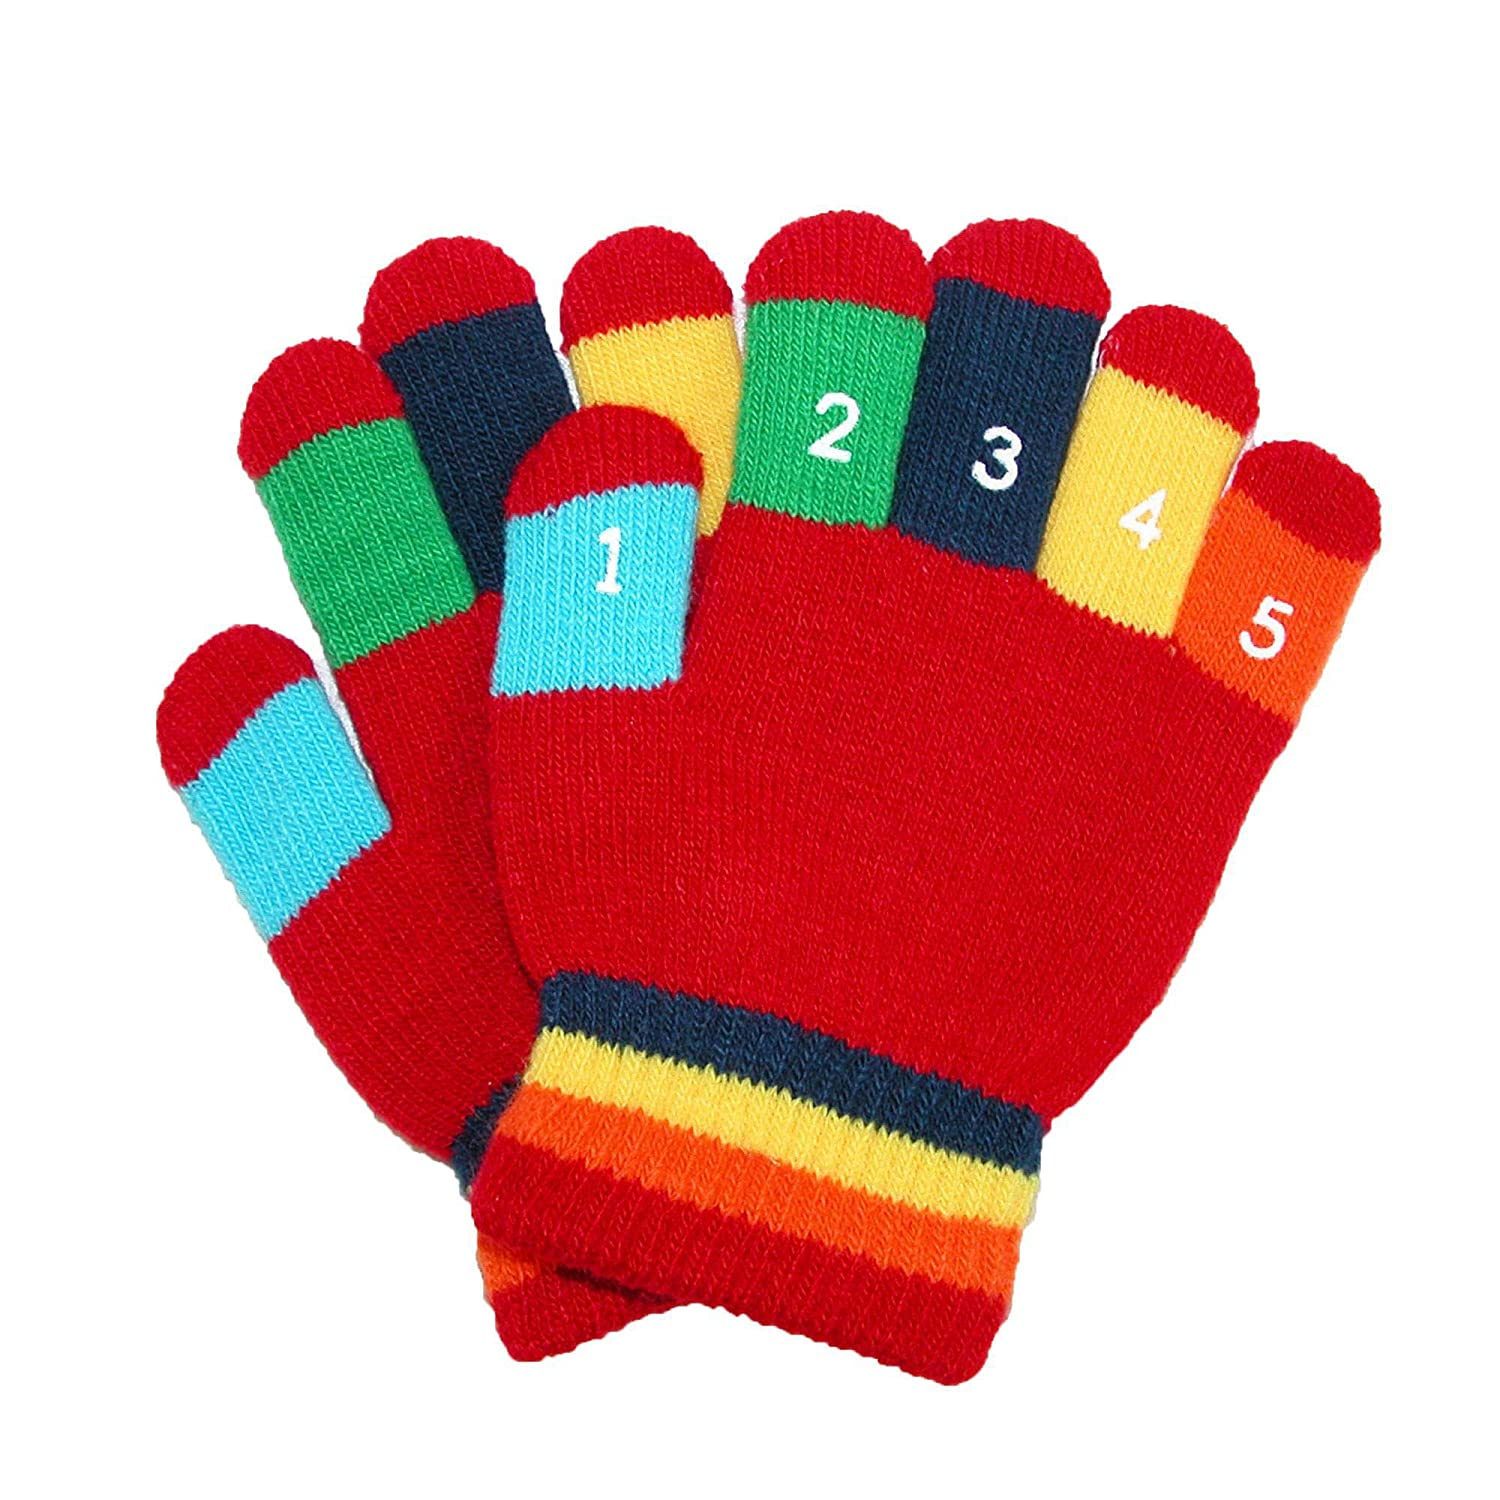 Grand Sierra Toddler 2-4T Knit Stretch Counting Gloves Black